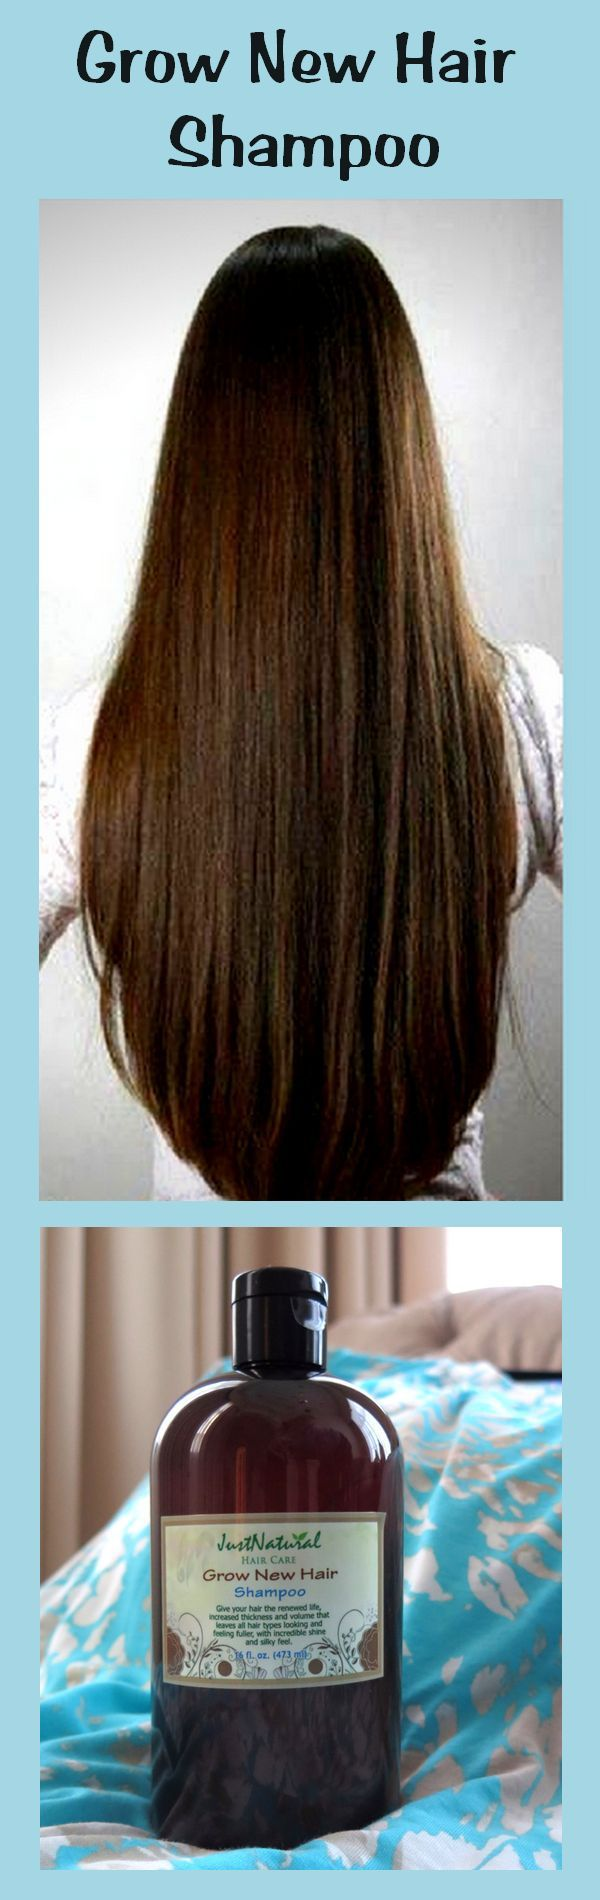 DIY Face Masks  : I have had thinning fine breaking hair for years. I used another product sold